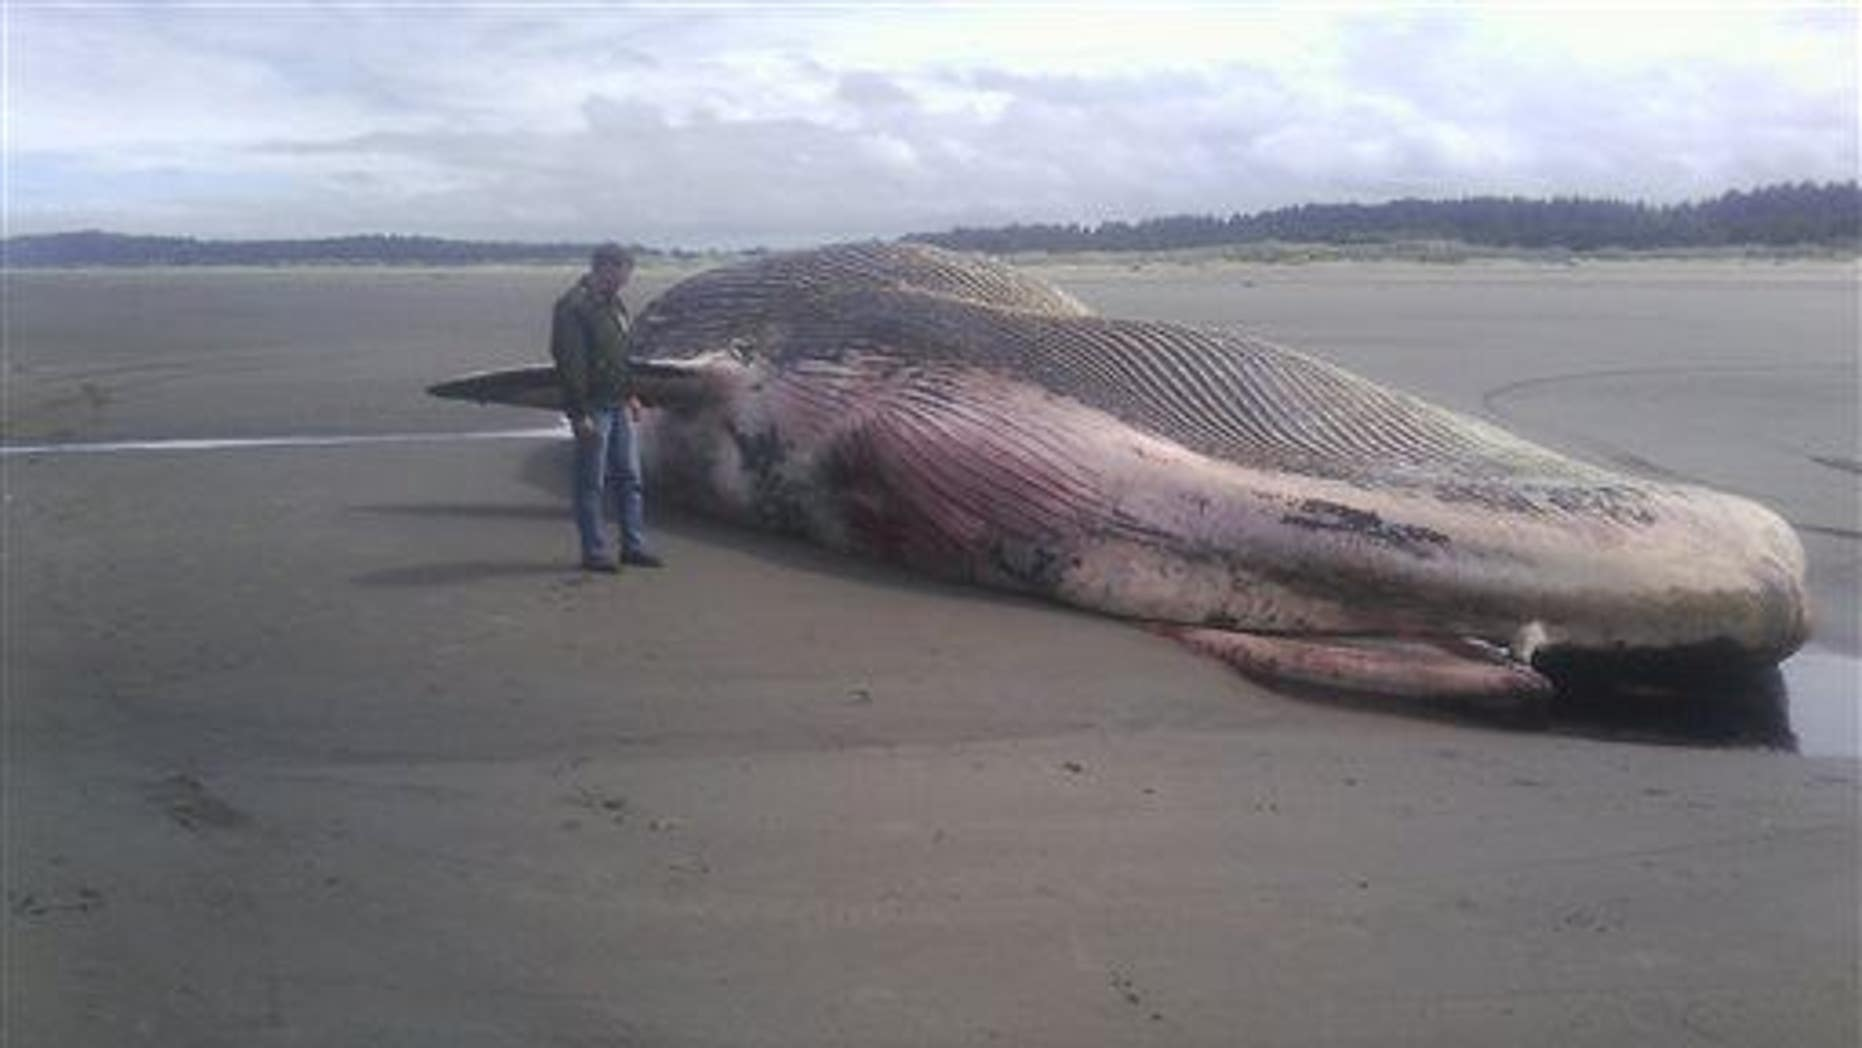 Another dead whale, this one found in Washington state, was also thought to be a sei whale.